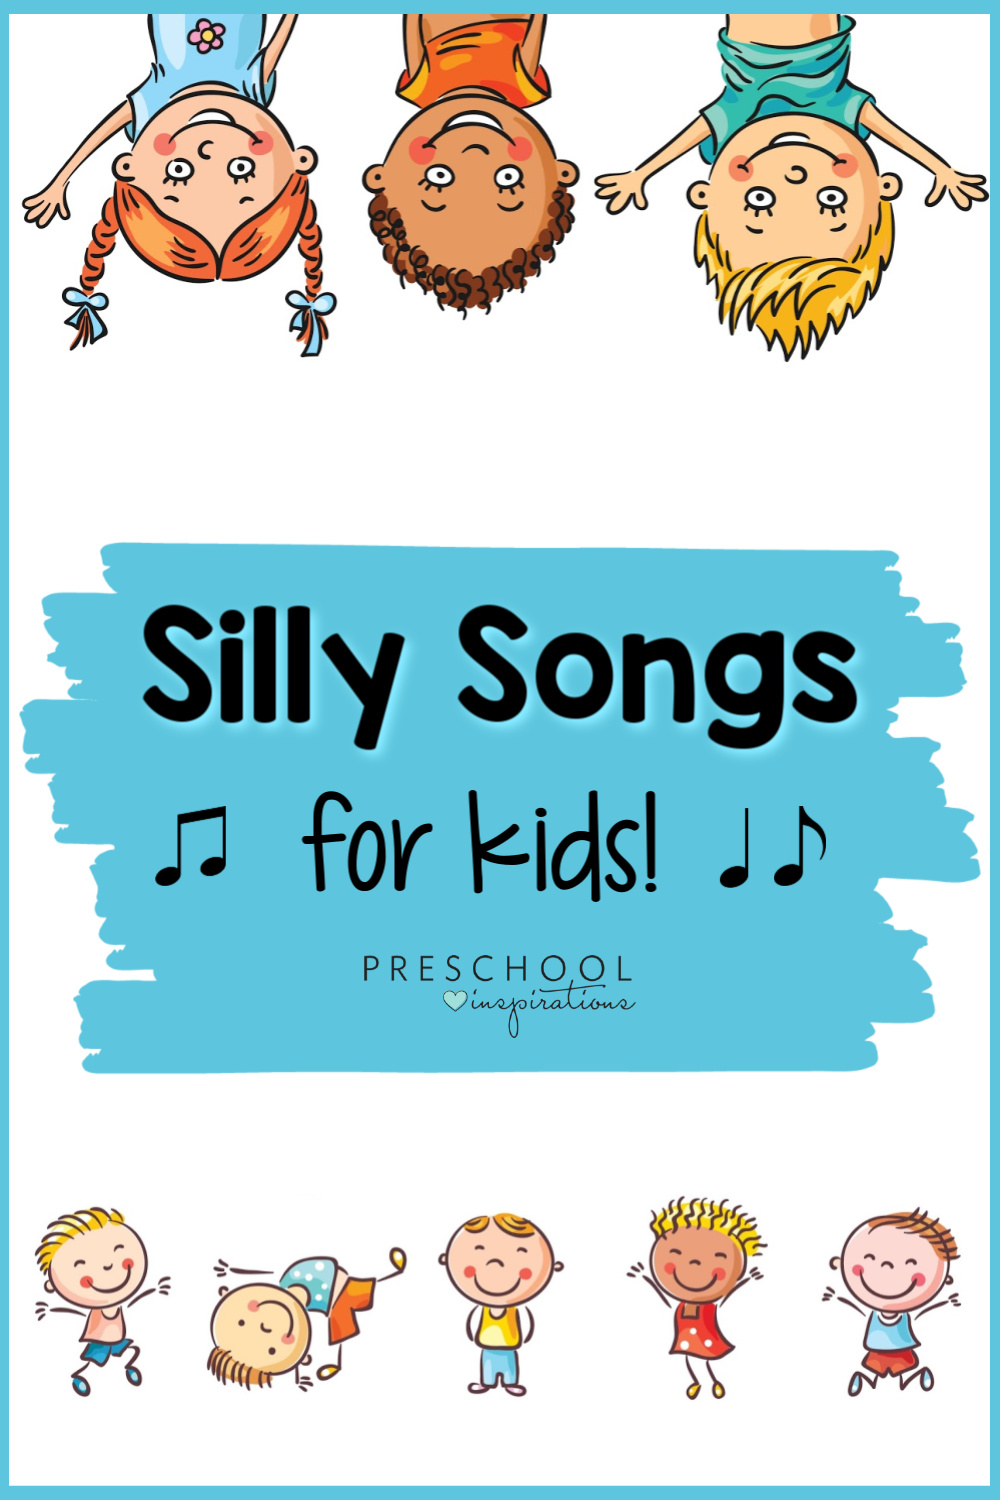 Silly songs for kids are great for stress relief, brain breaks, behavior management, or when you just need a good giggle! These fun songs for preschoolers and kids will have them smiling in no time - maybe even you, too!